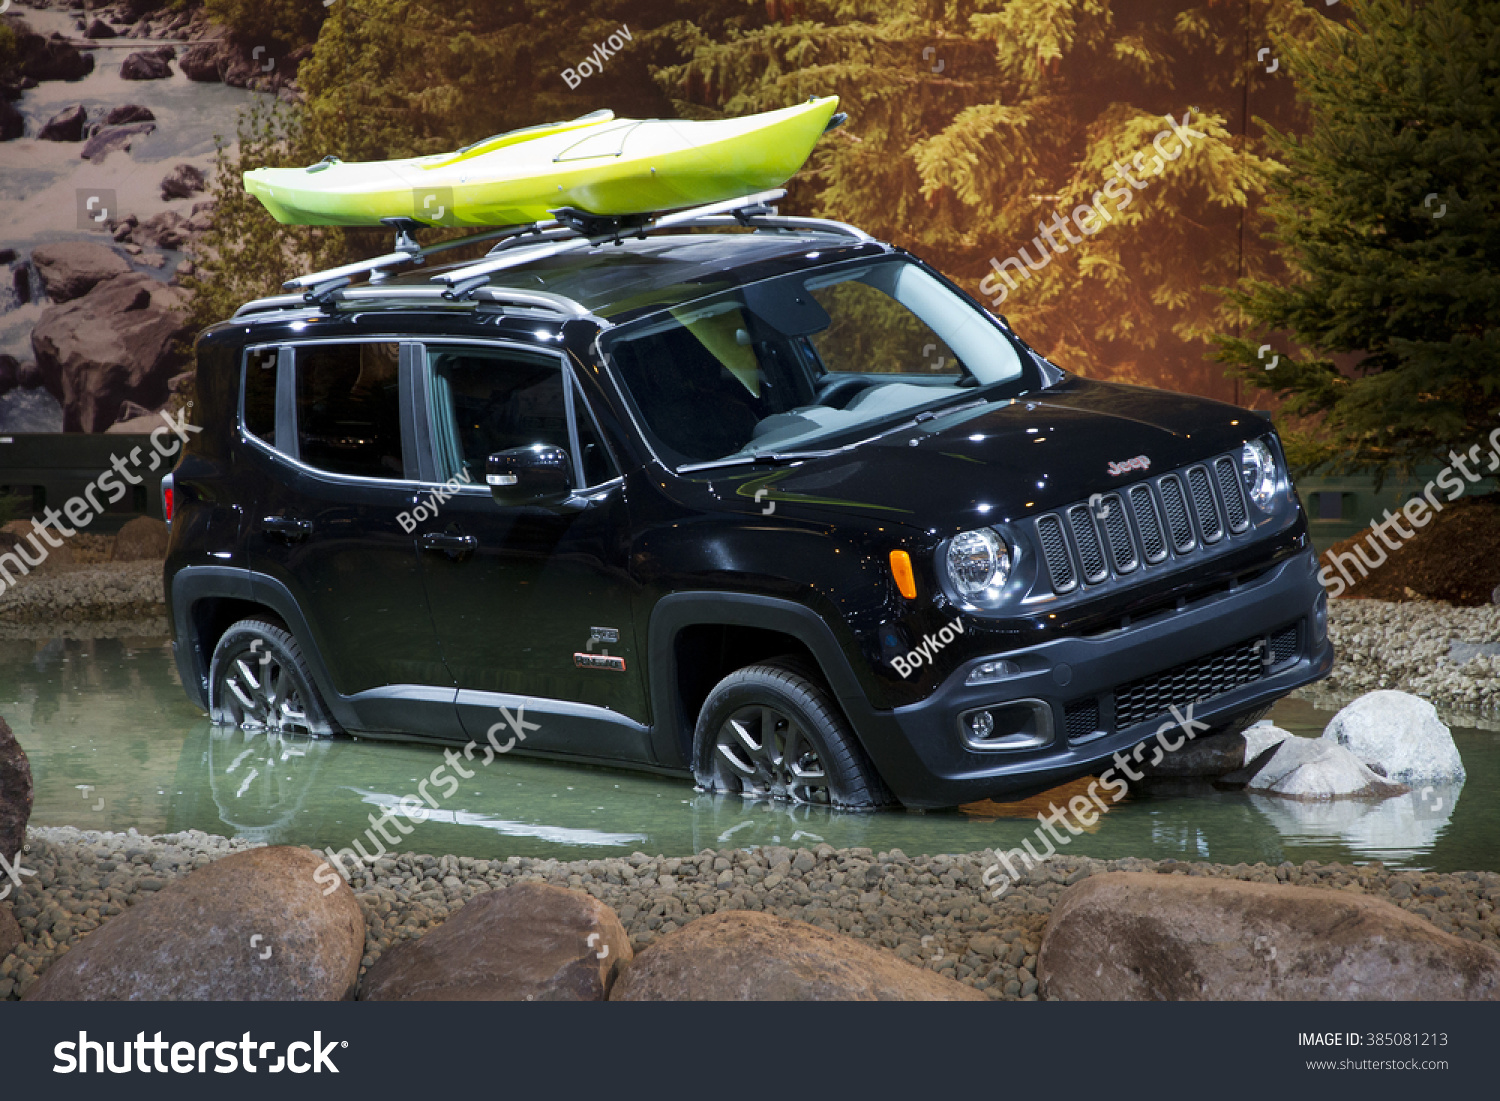 chicago il february 15 jeep renegade stock photo (edit now